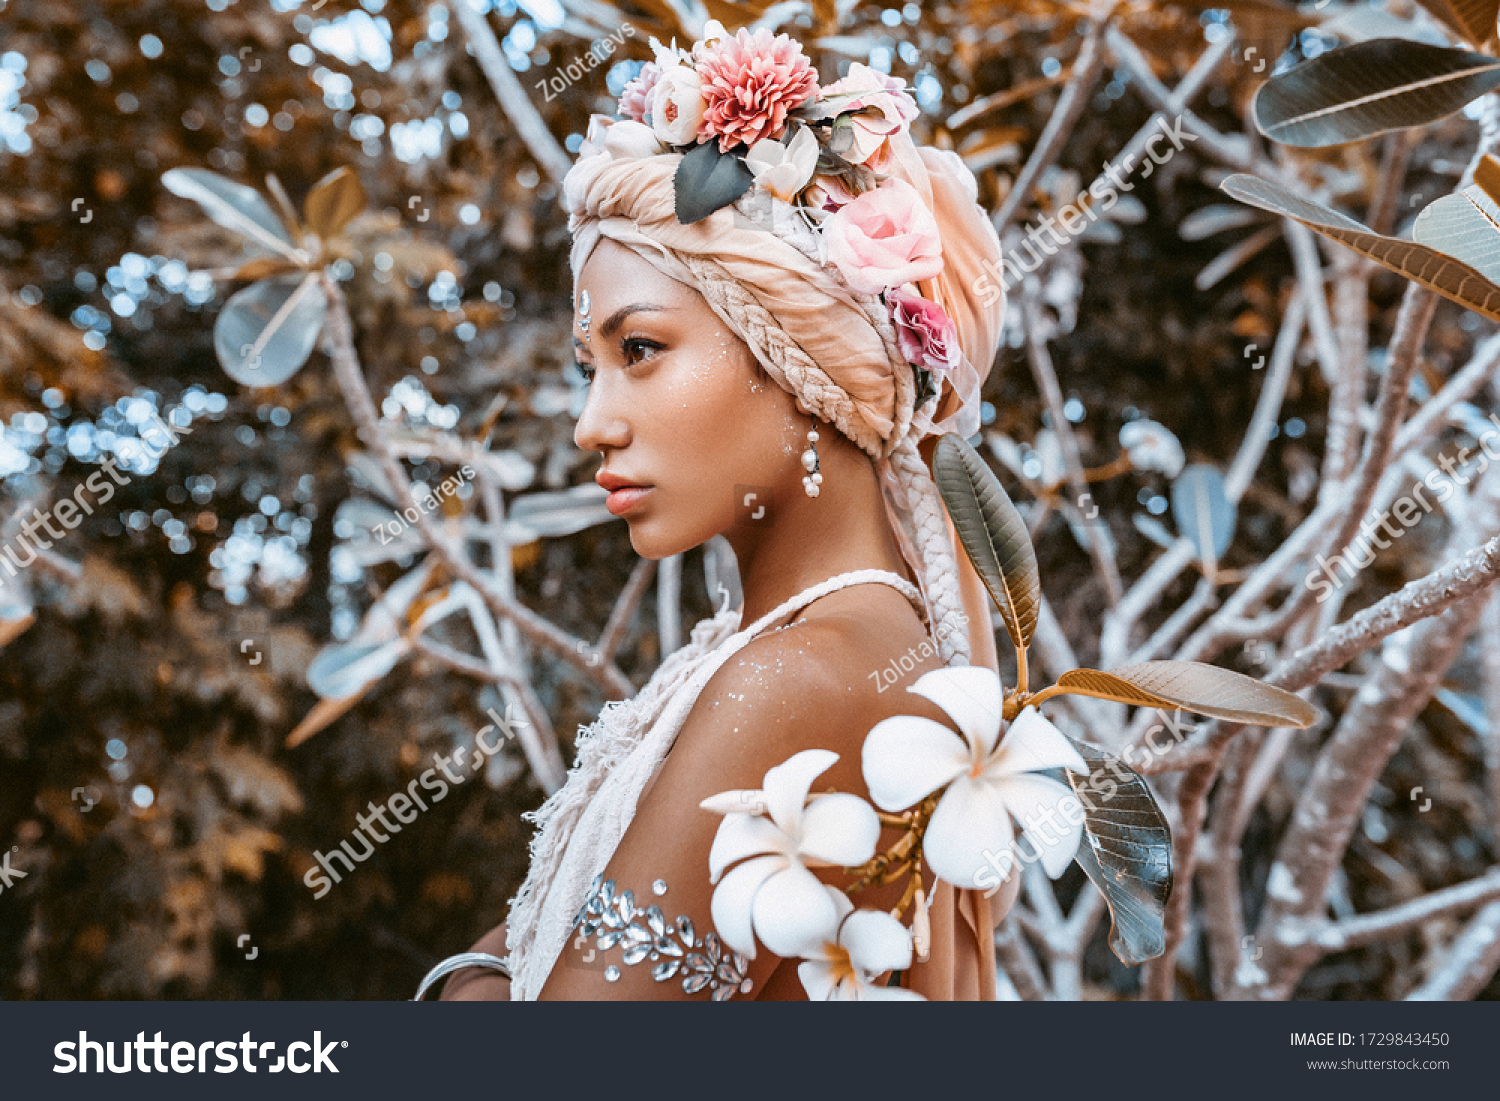 beautiful young stylish woman wearing flowers wreath outdoors portrait #1729843450